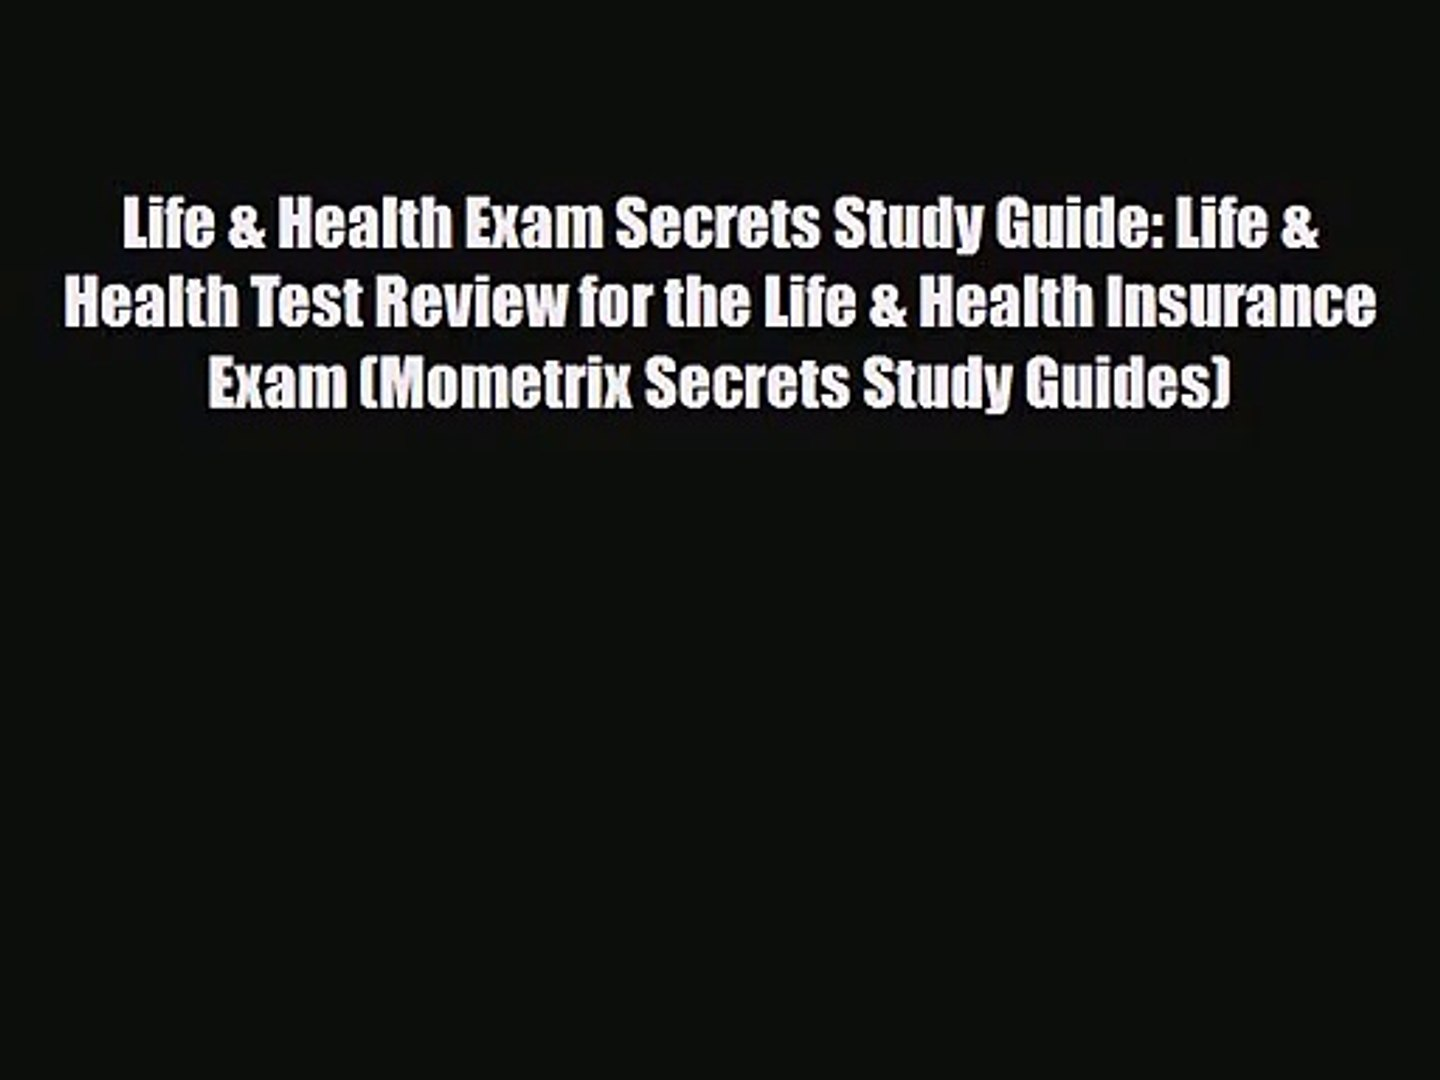 [PDF Download] Life & Health Exam Secrets Study Guide: Life & Health Test Review for the Lif